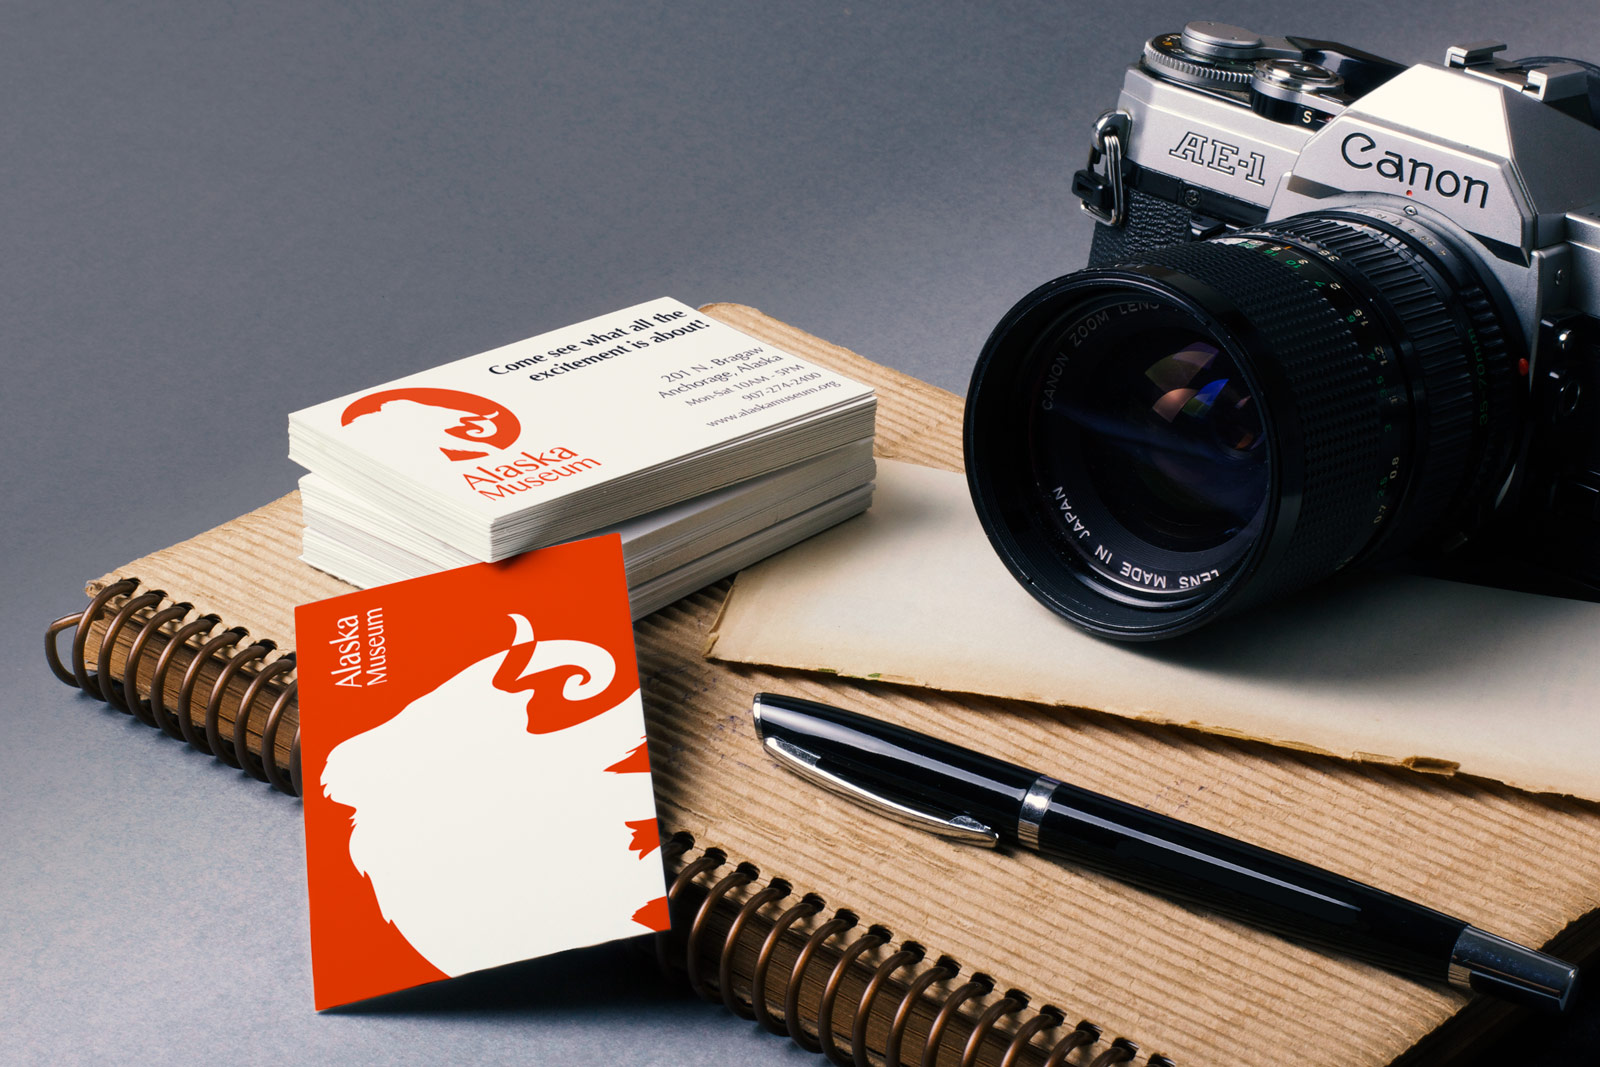 business cards and camera